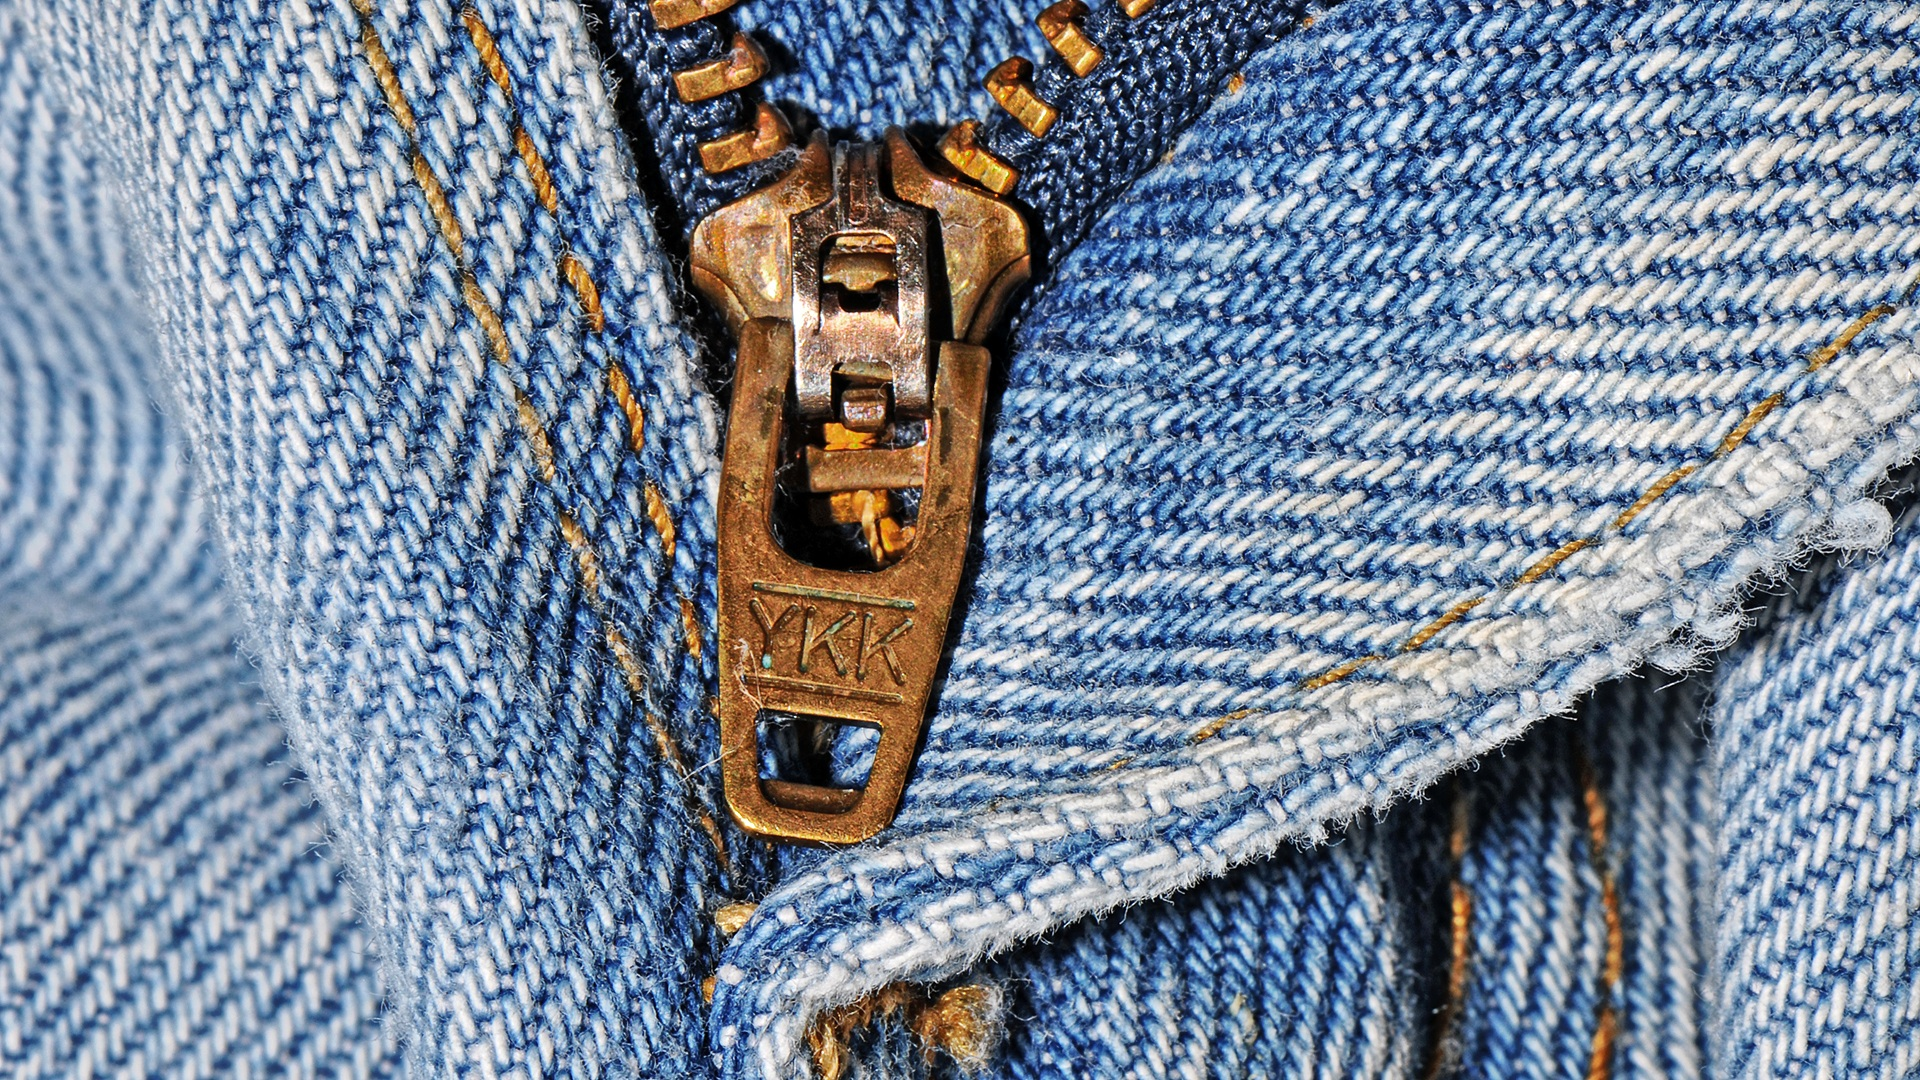 YKK zipper on a pair of jeans